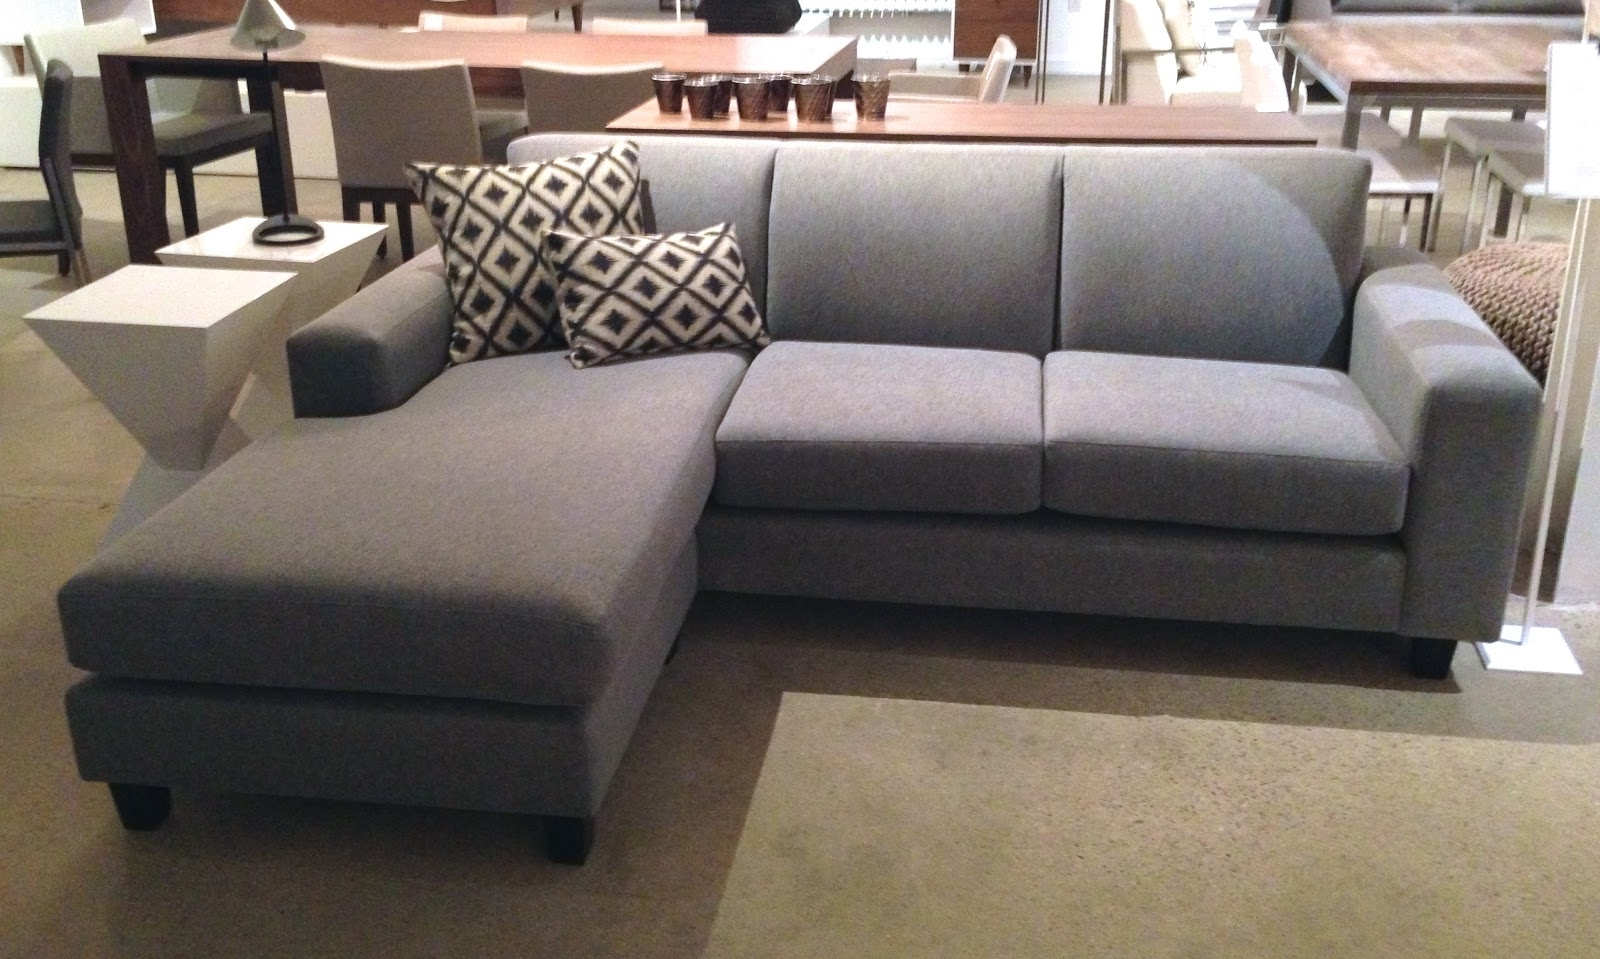 Www.energywarden Throughout Favorite Sectional Sofas In Canada (Gallery 4 of 20)